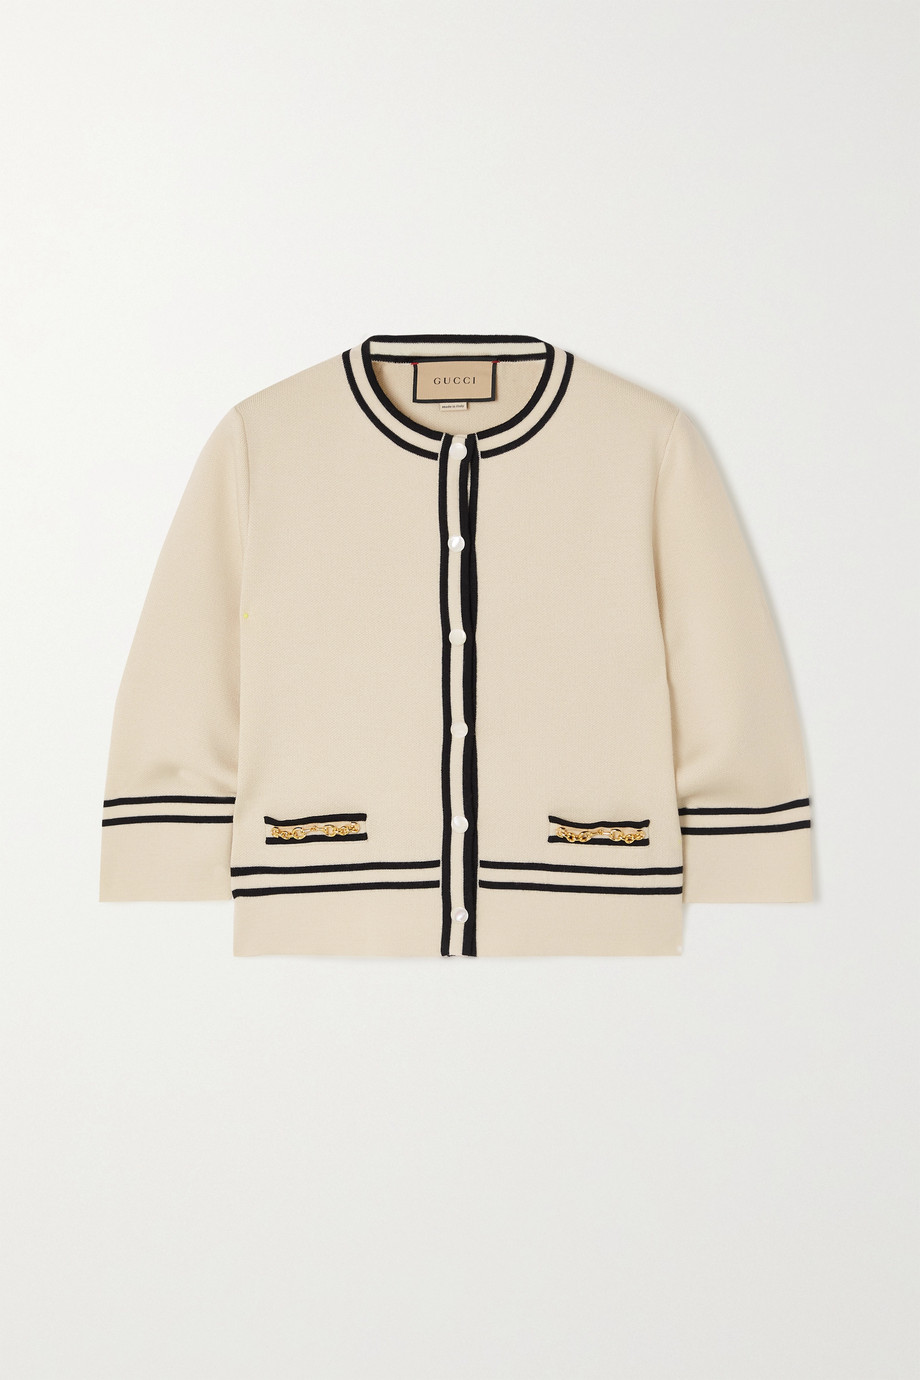 GUCCI Horsebit-embellished striped wool cardigan